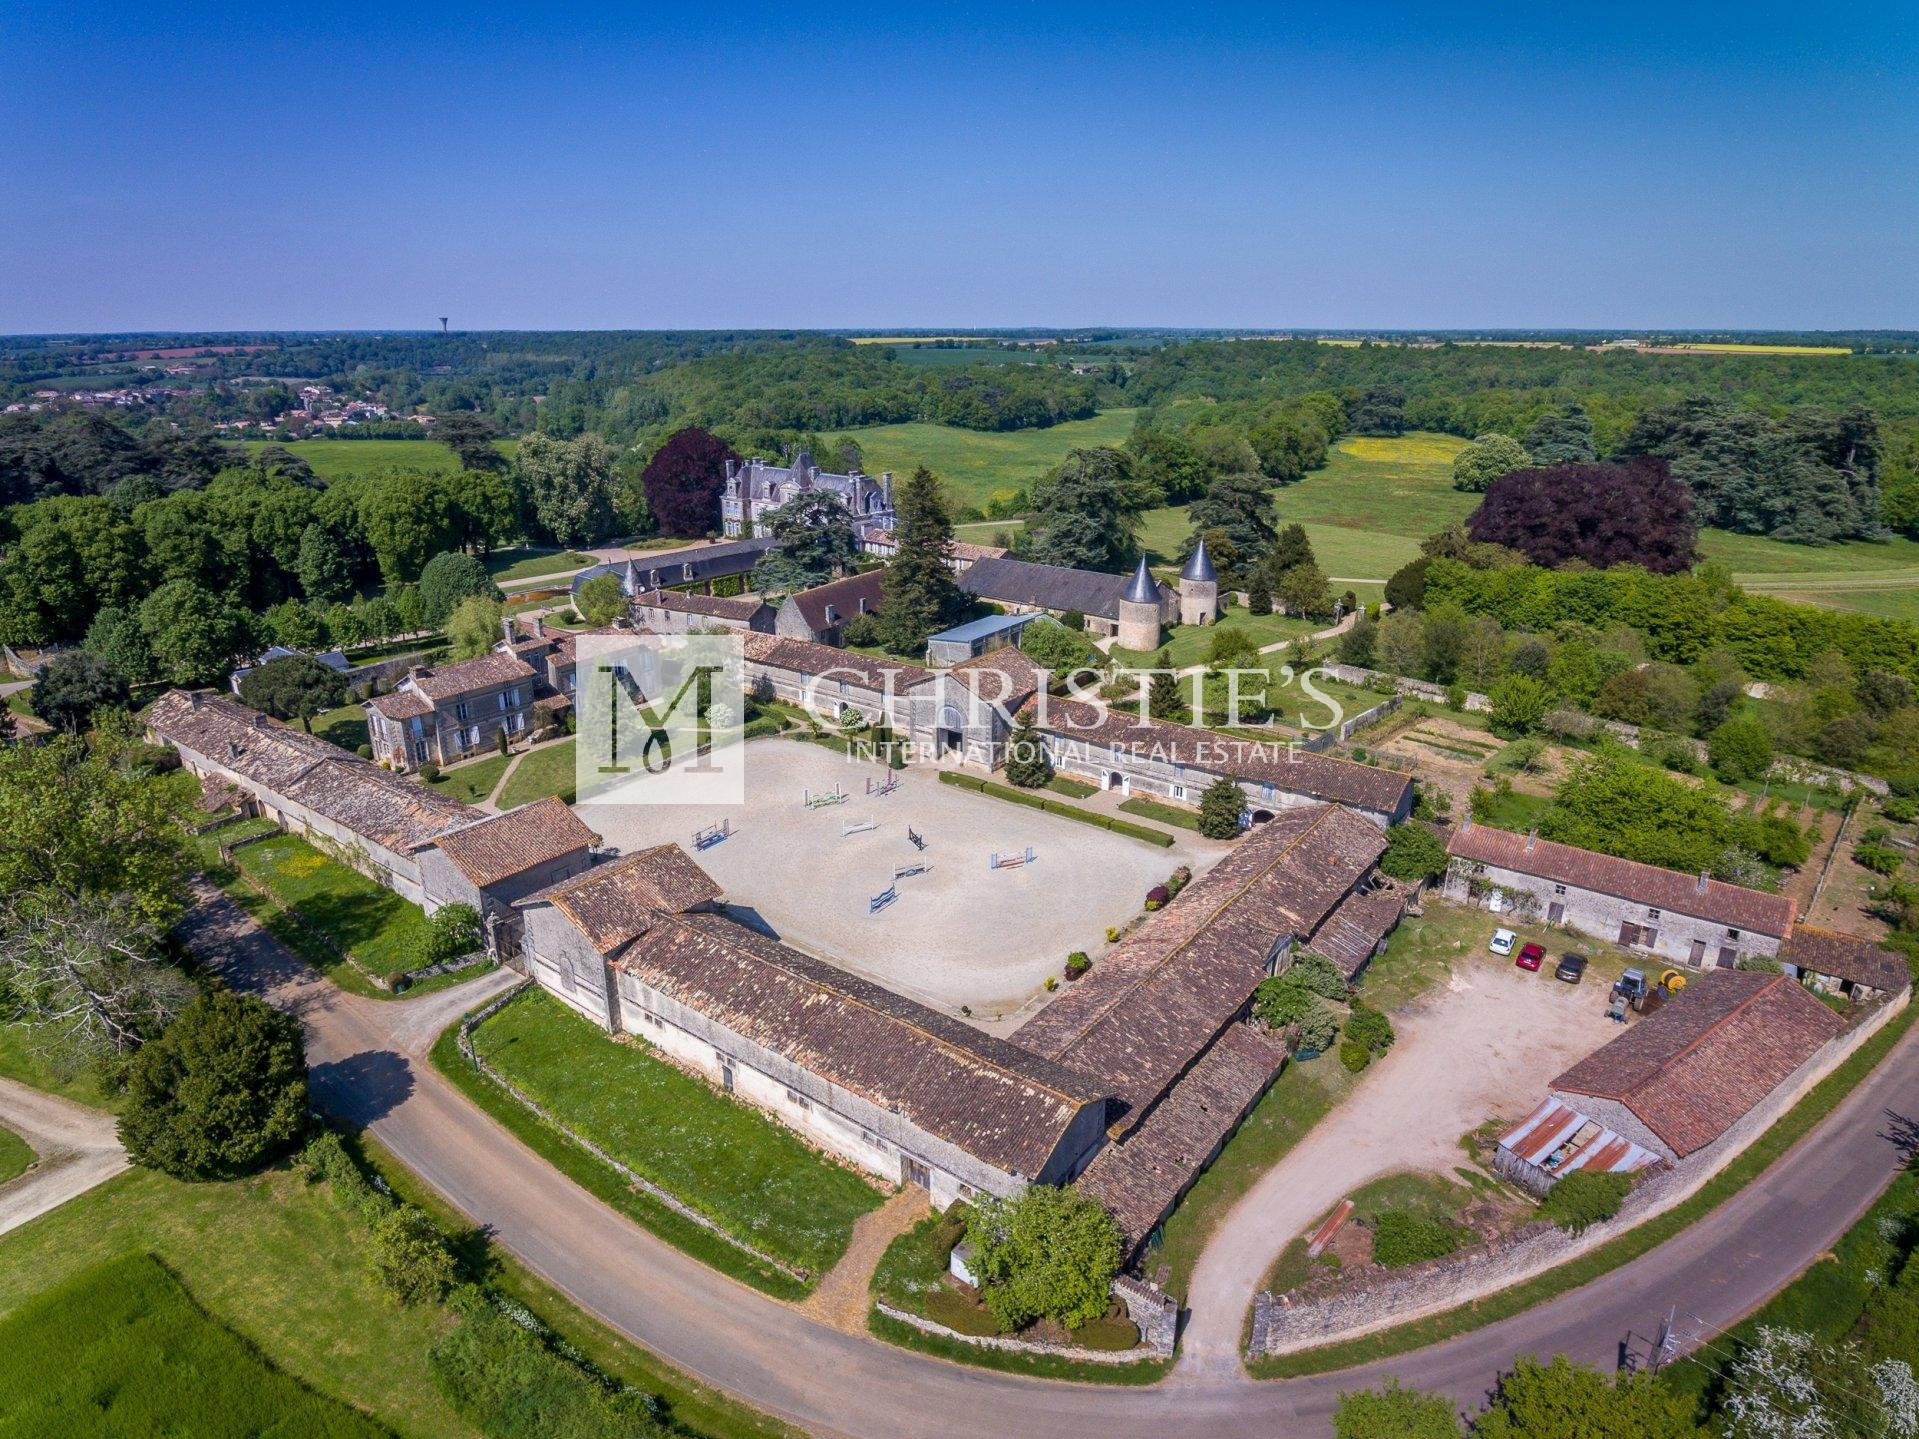 Ariel view of large chateau estate